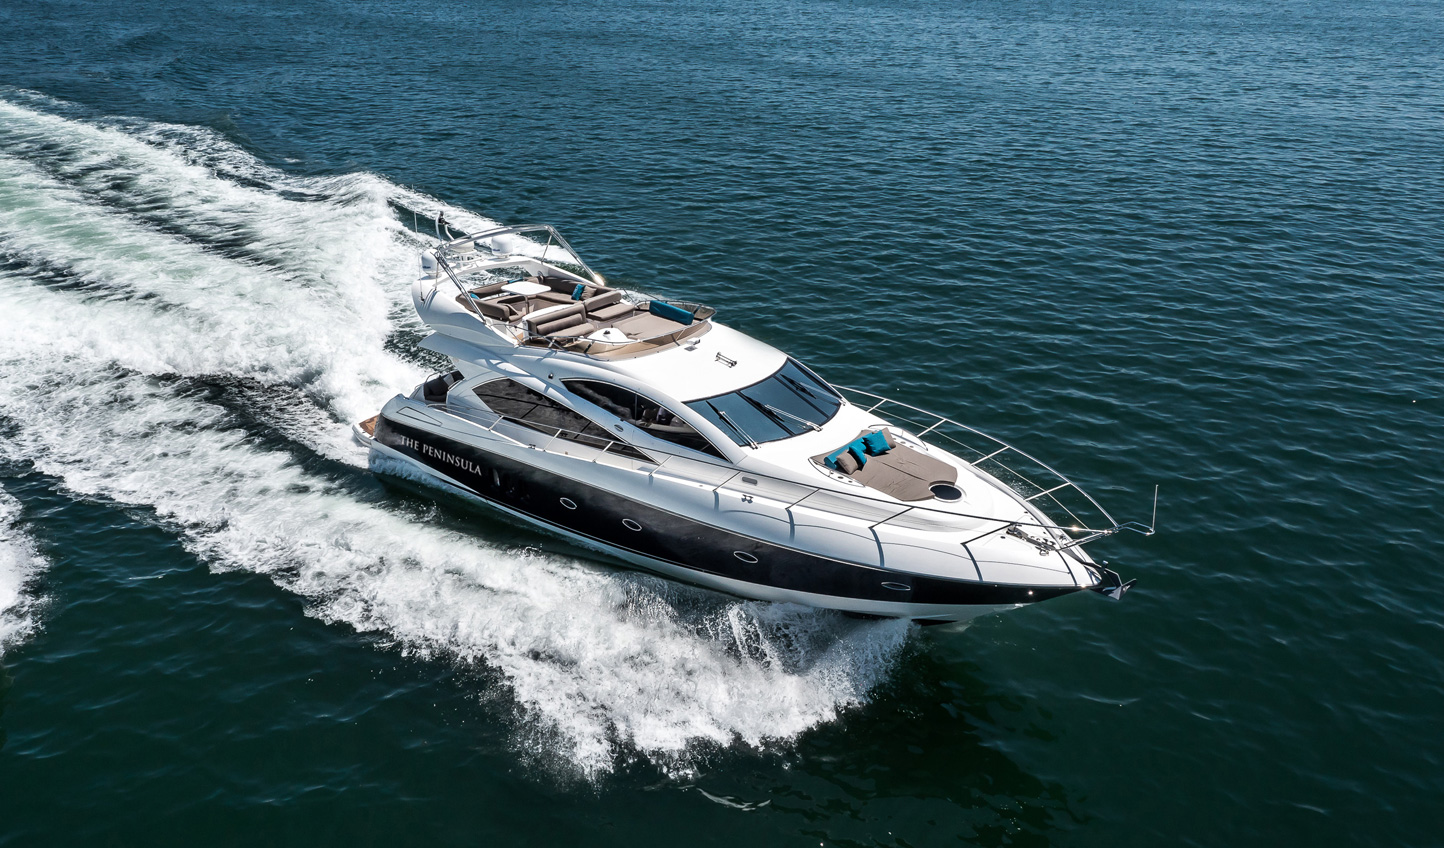 Explore the harbour on board The Peninsula's private yacht